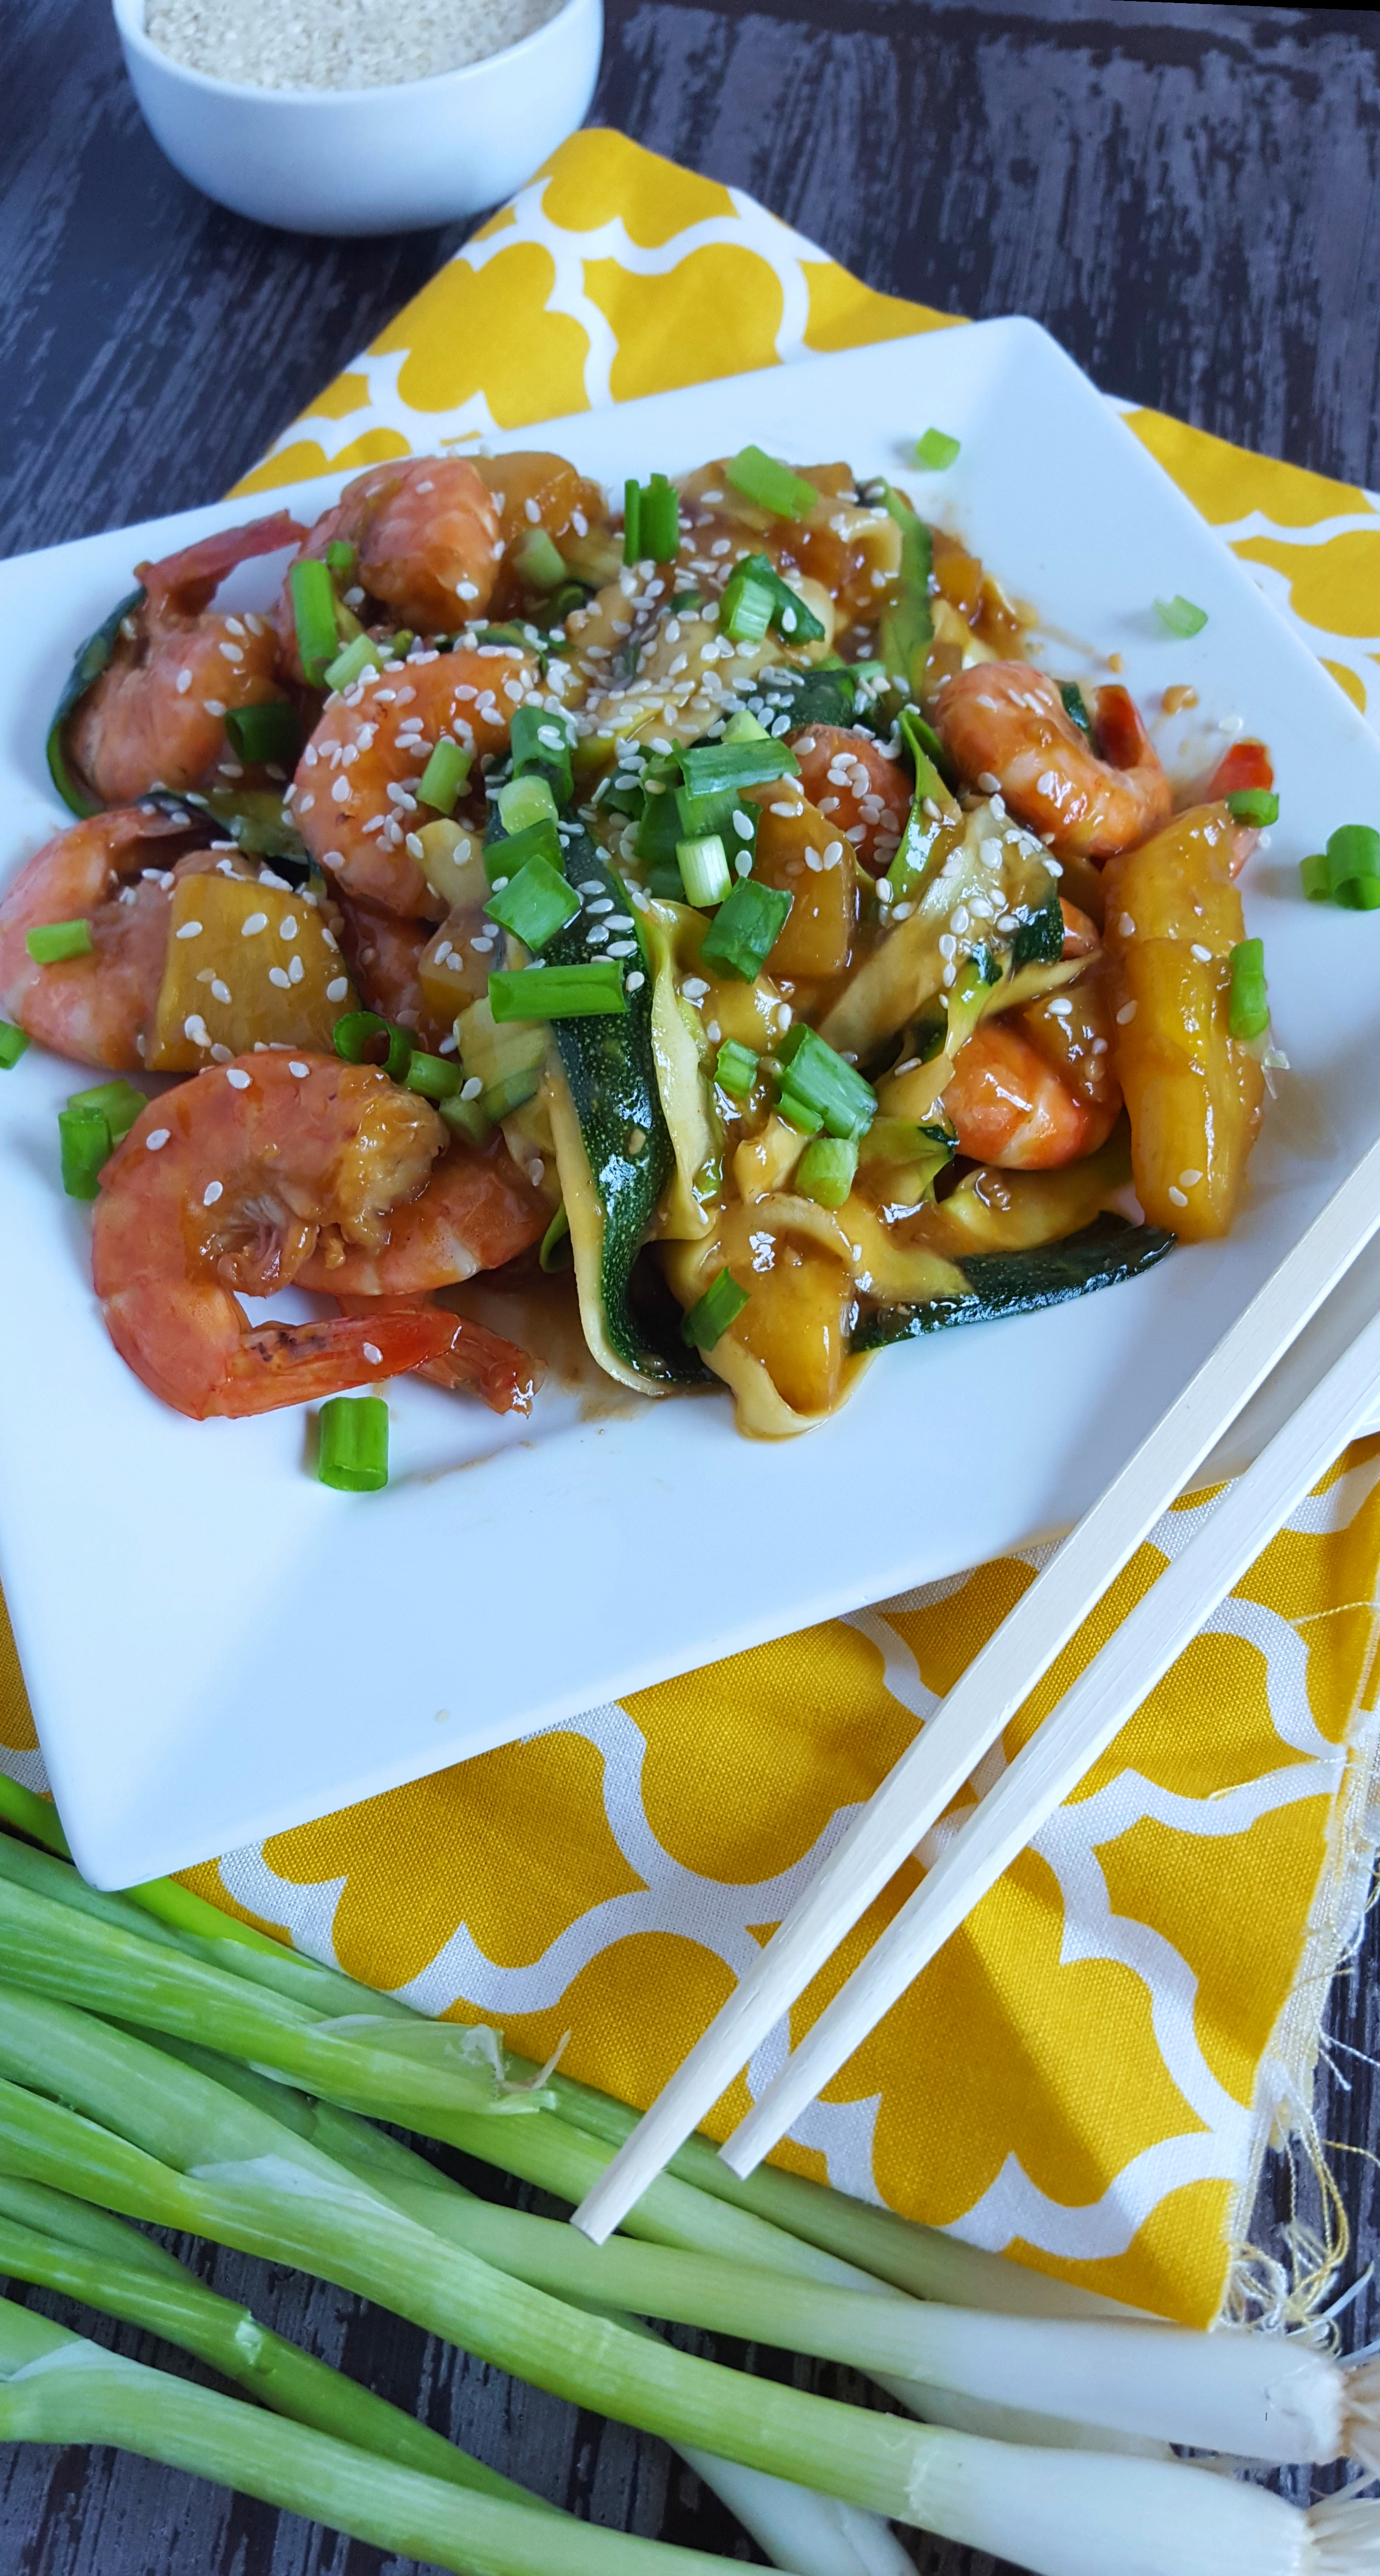 warm pineapple and juicy shrimp taste amazing with the spicy teriyaki ...